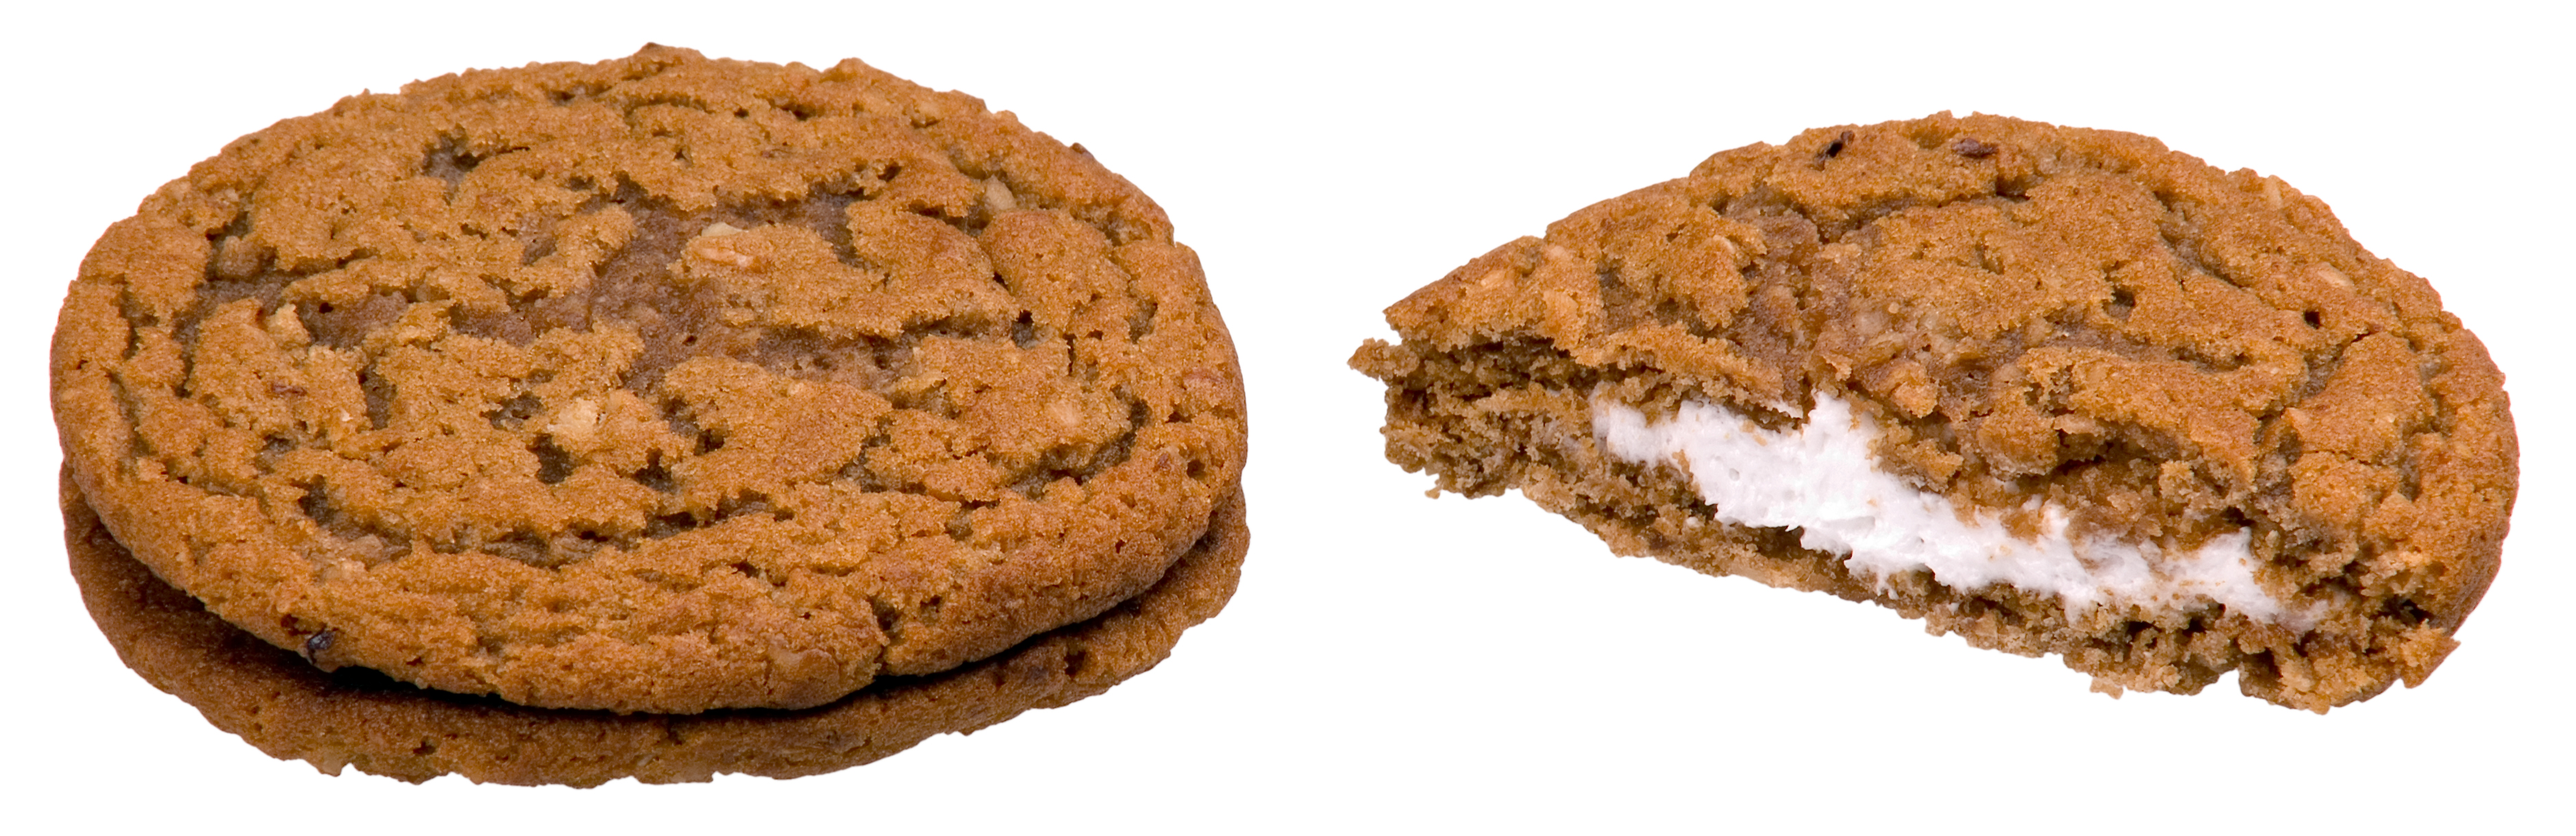 Description LD-Oatmeal-Creme-Pies.jpg